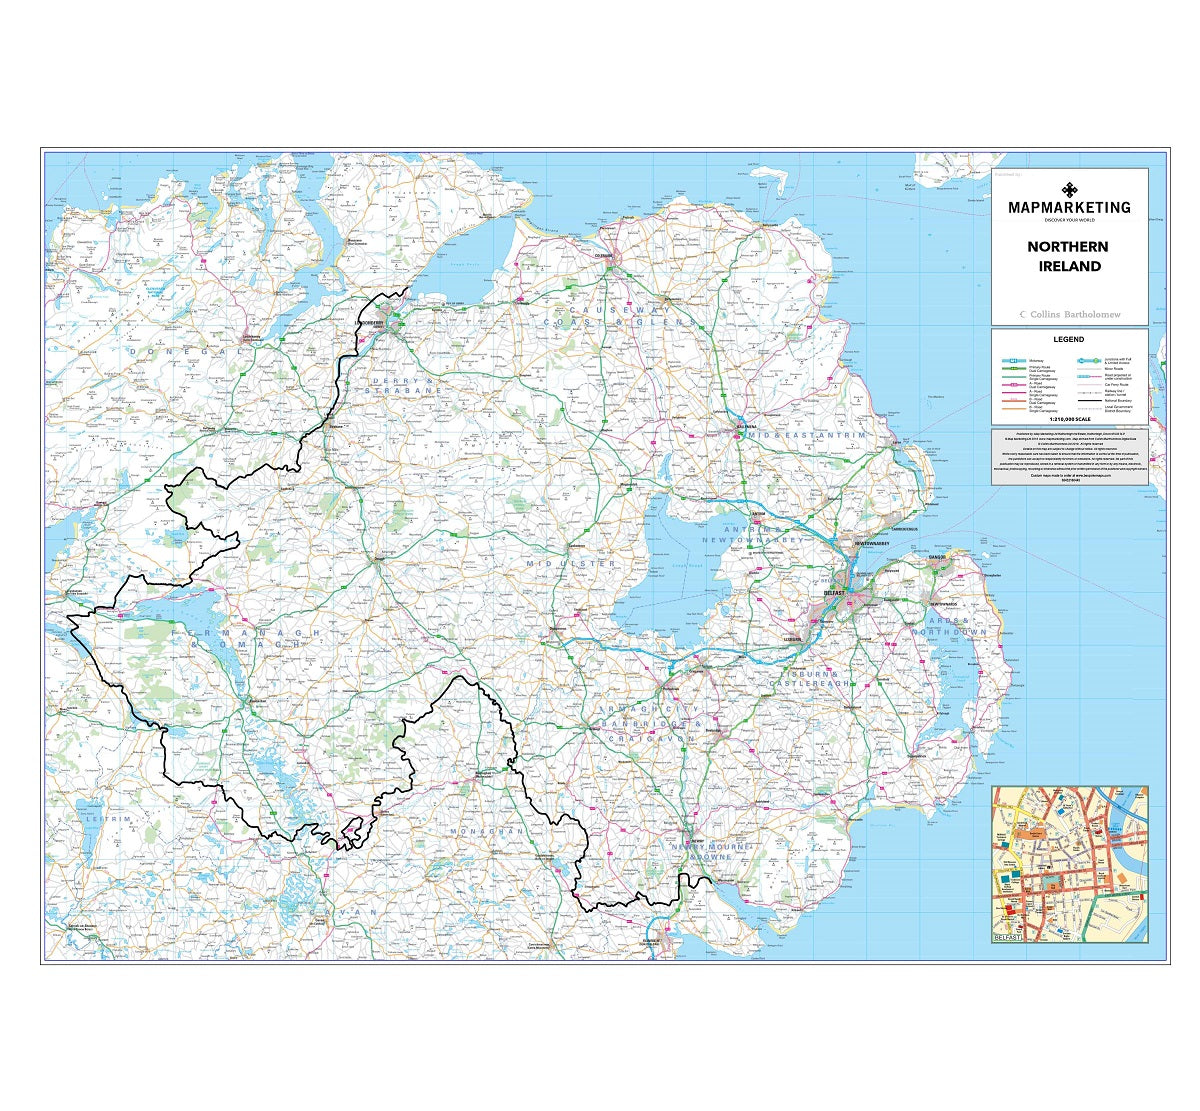 Map Of Ireland Northern Ireland.Northern Ireland Road Map Wall Map Of Northern Ireland